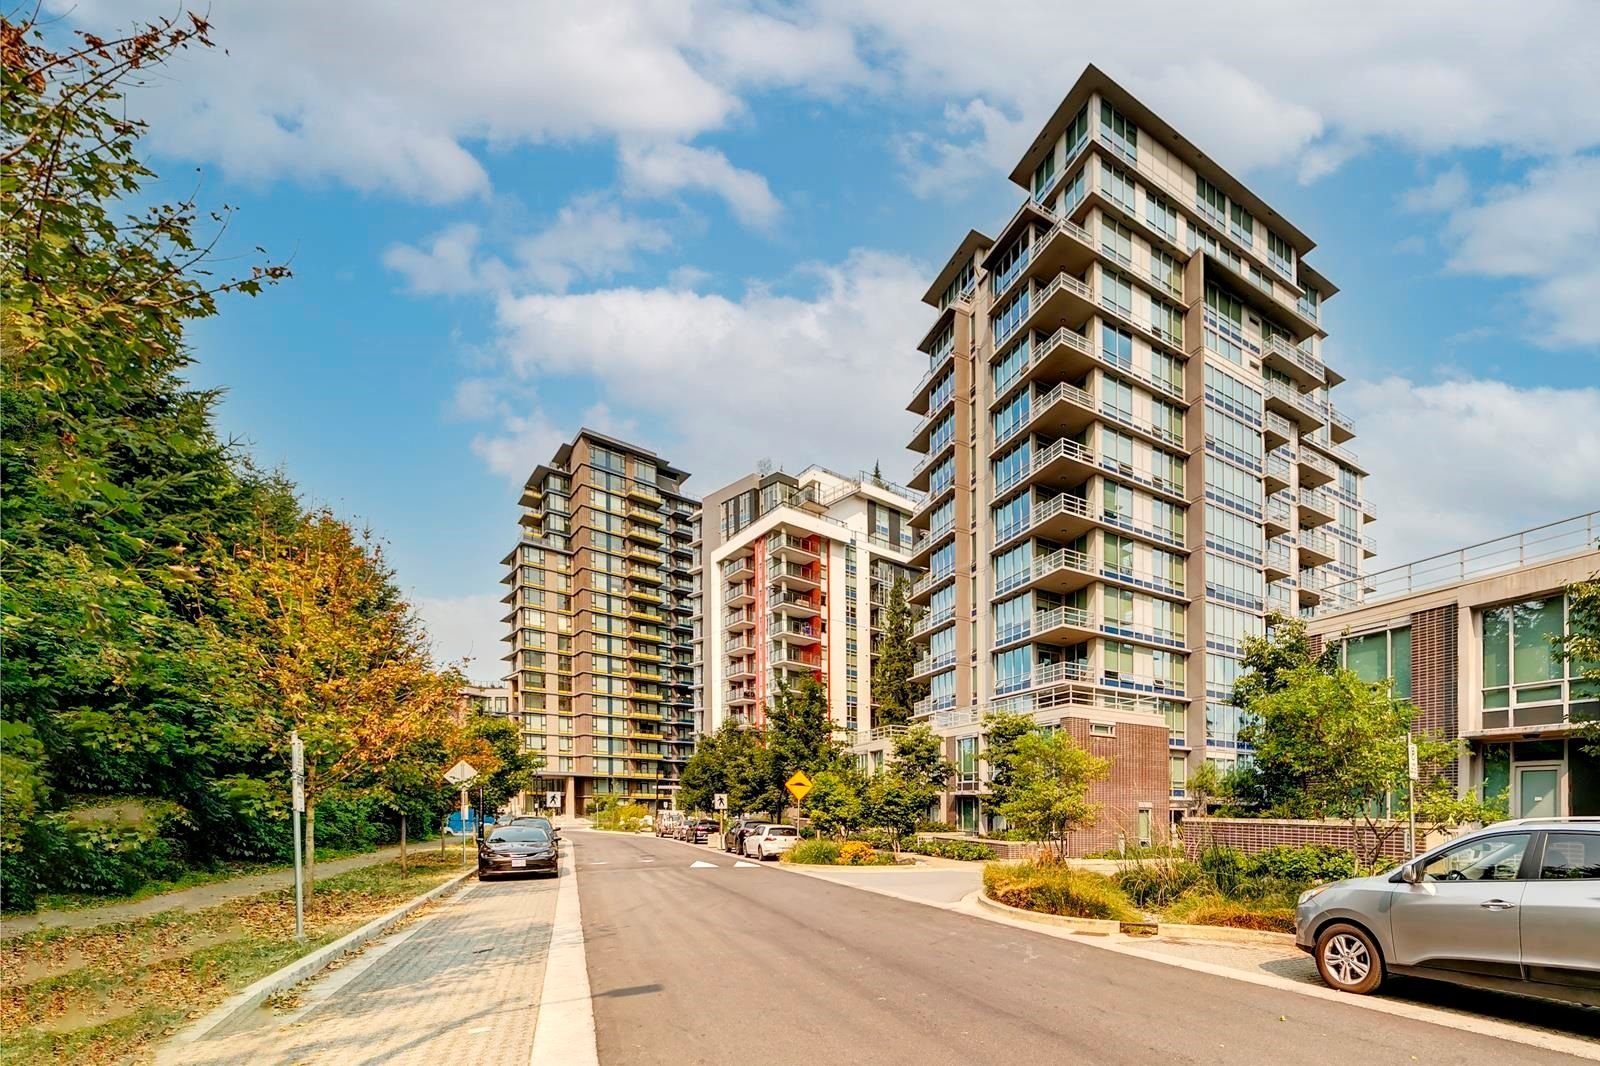 """Main Photo: 306 9060 UNIVERSITY Crescent in Burnaby: Simon Fraser Univer. Condo for sale in """"Altitude Tower 2"""" (Burnaby North)  : MLS®# R2609733"""